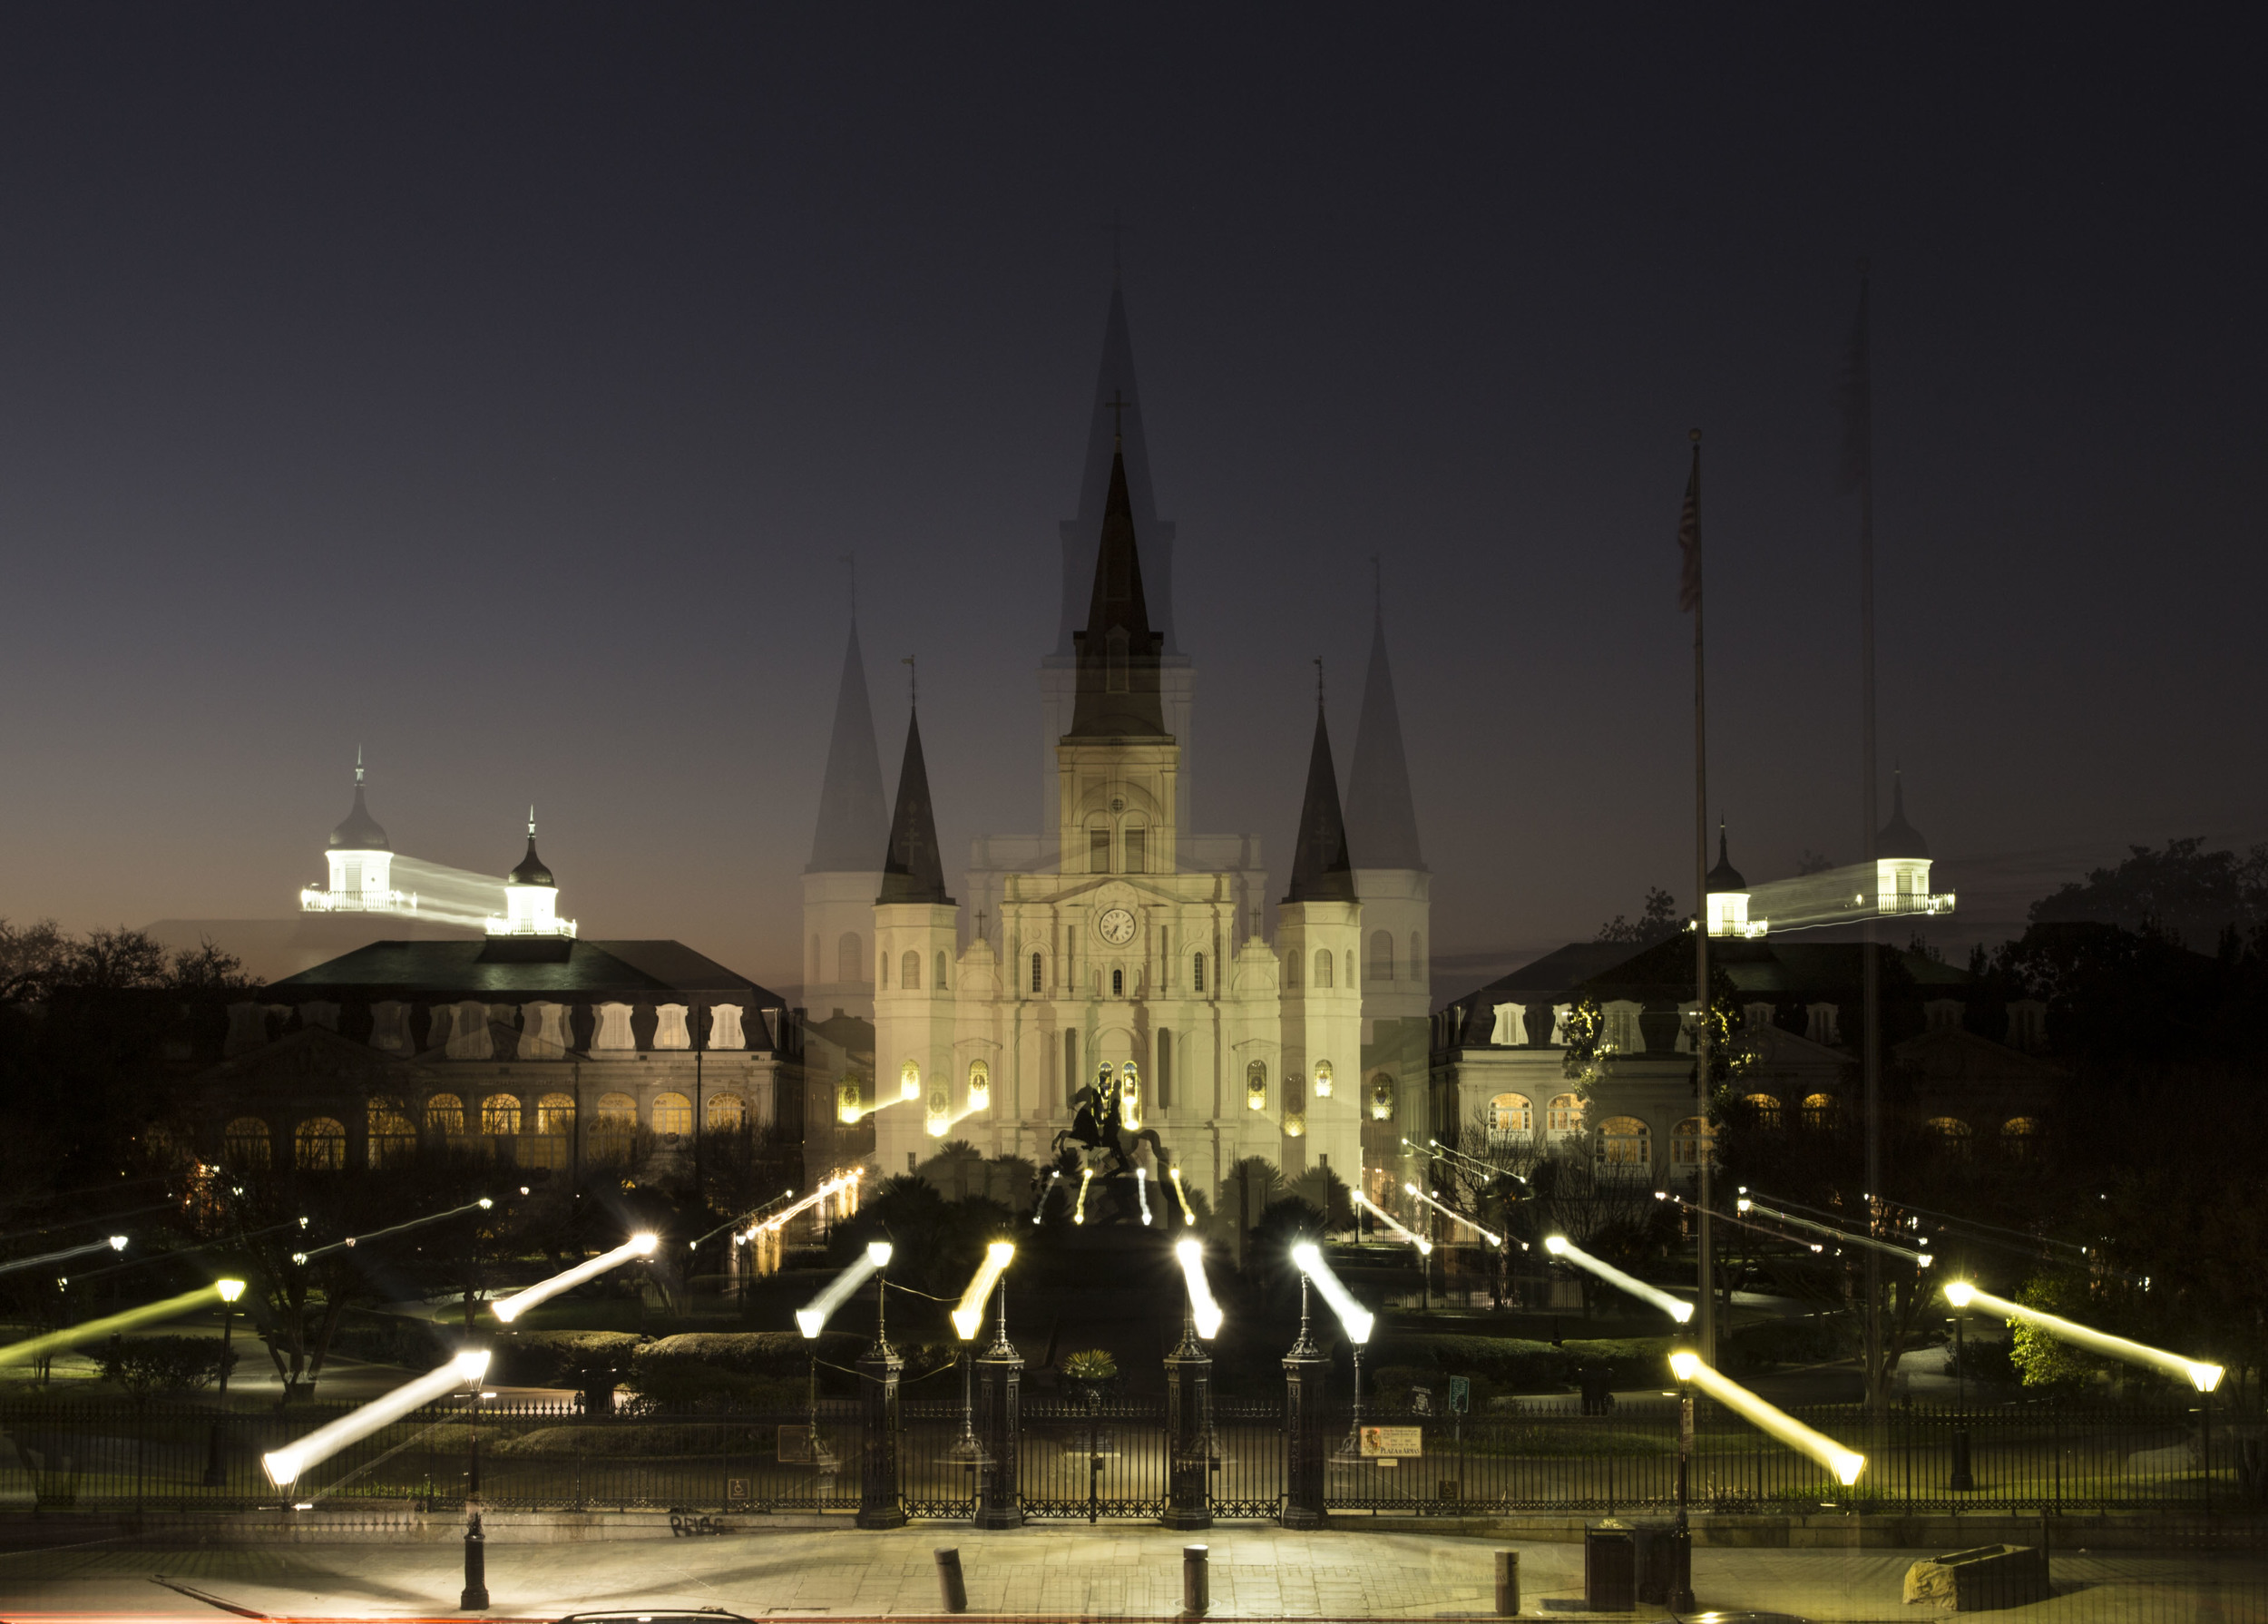 Zack-Smith-Photography-New-Orleans-How-to-tuesday-#27-Long-Exposure-Best-Night-Photography-Blurry-jackson-square-french-quarter-church-beautiful